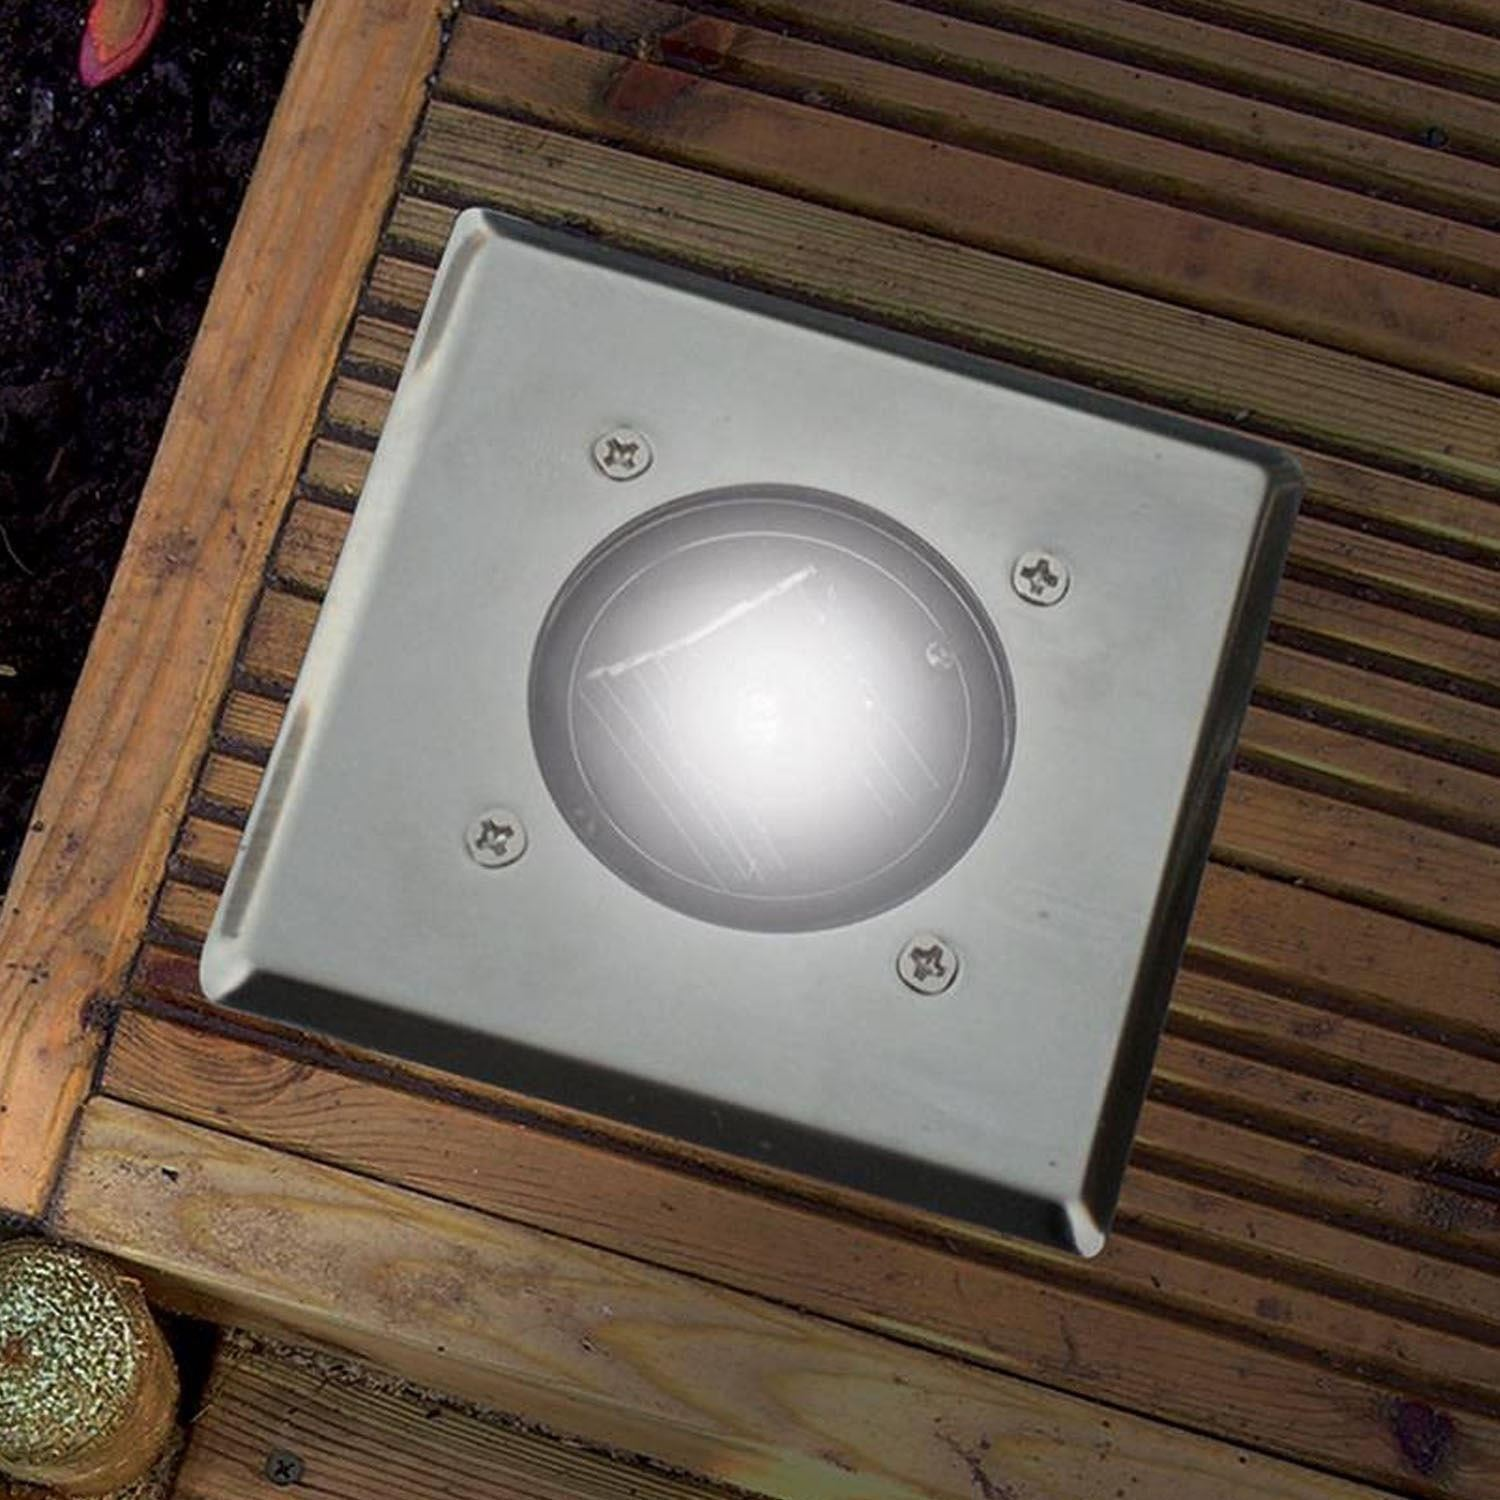 Solar Outdoor Patio Deck Lights: 12 Pack Bright White LED Square Solar Garden Decking Deck